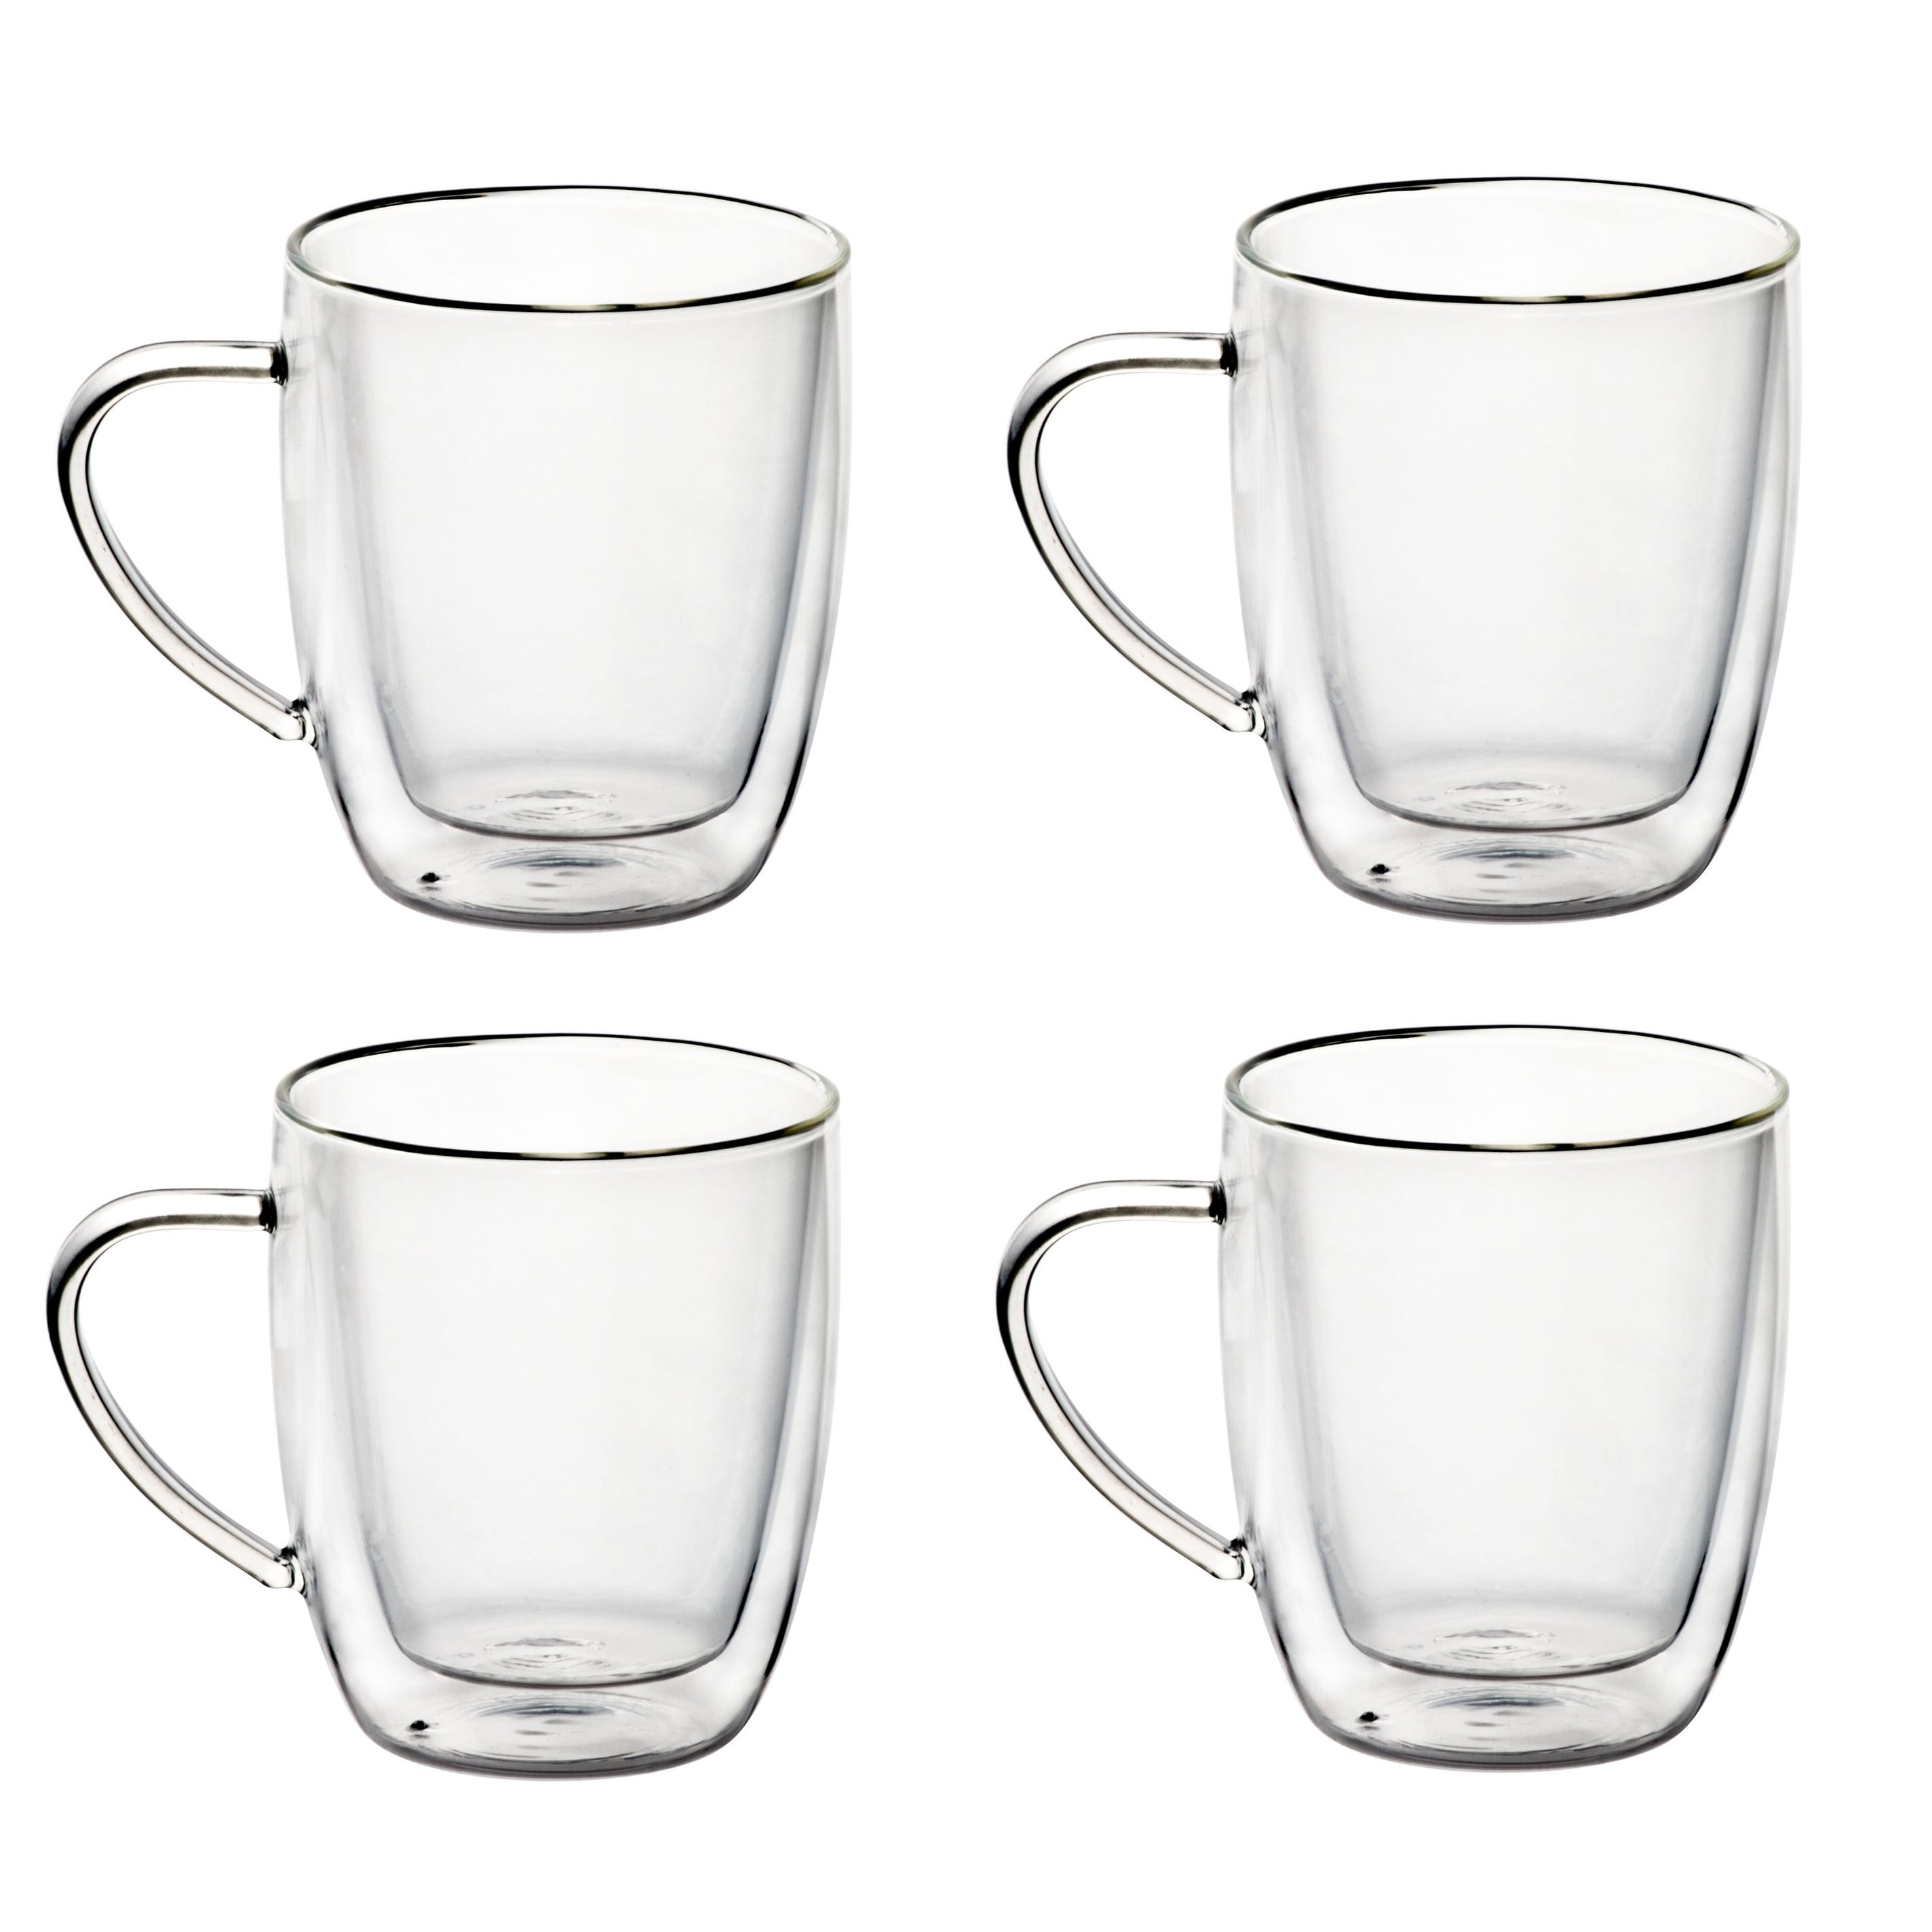 14 Oz Gl Coffee Mugs Double Walled Gles Set Of 4 On Free Shipping Orders